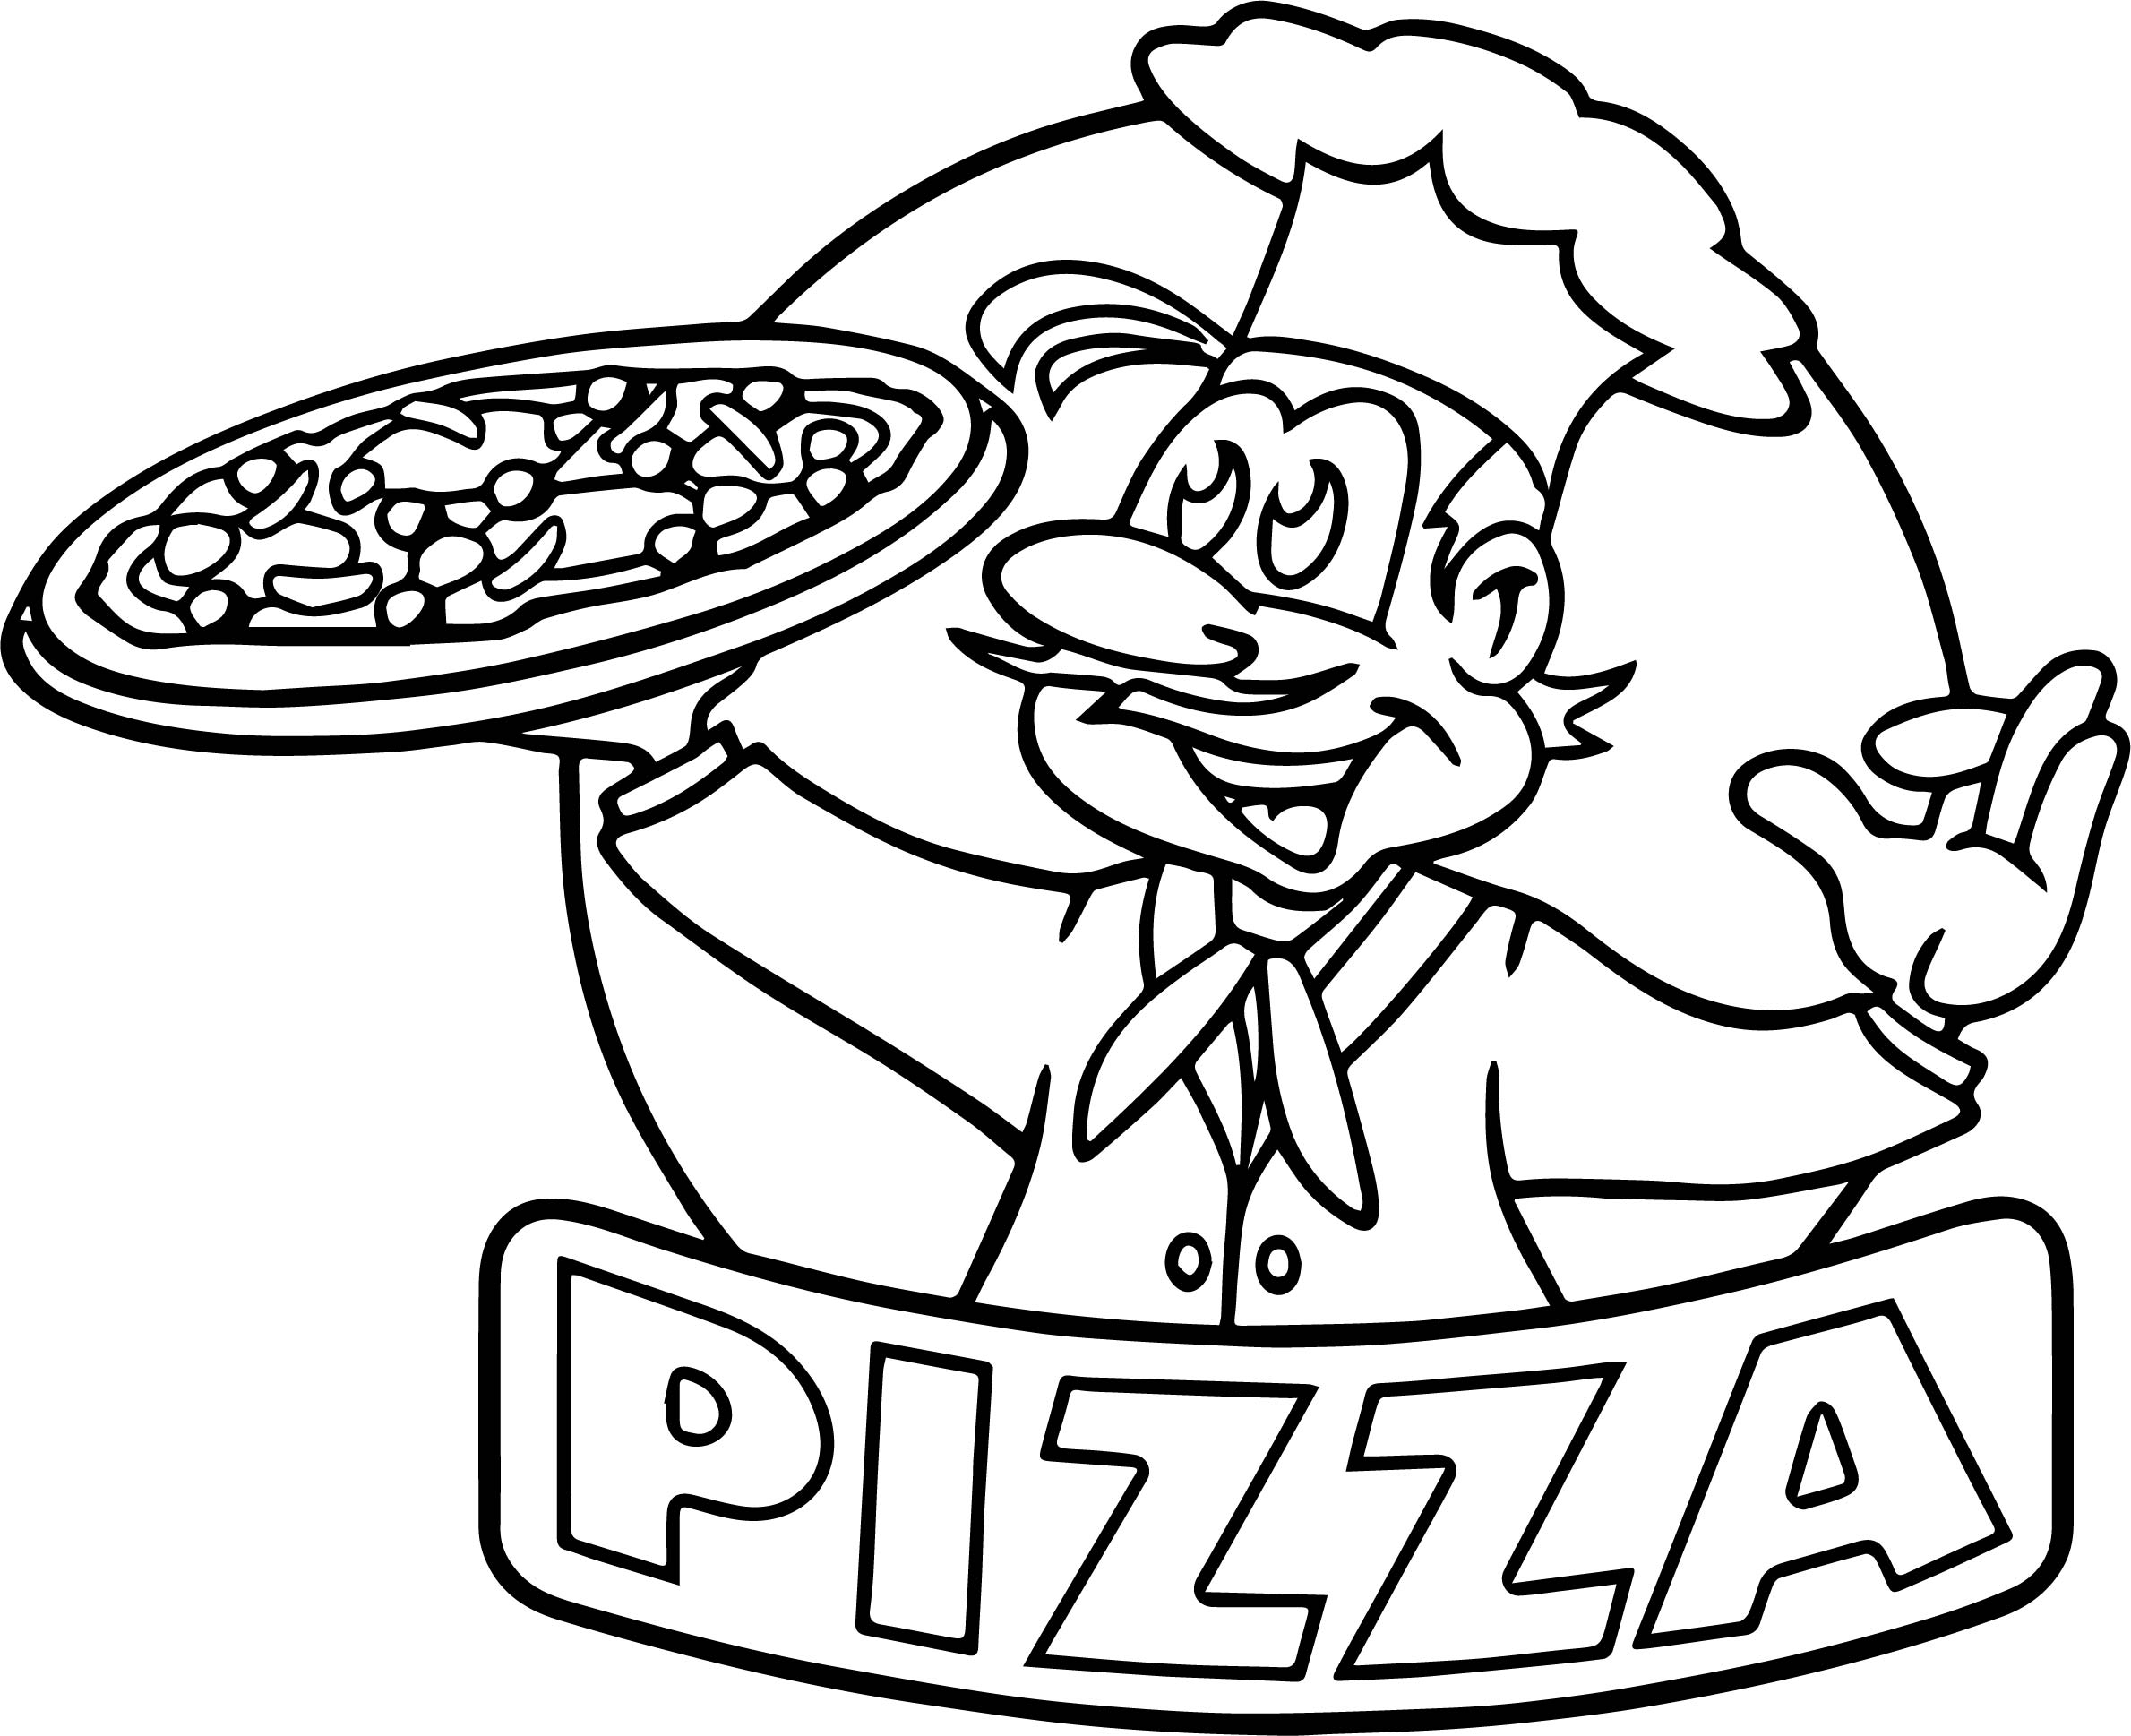 Pizza Coloring Pages Preschool At Getcolorings